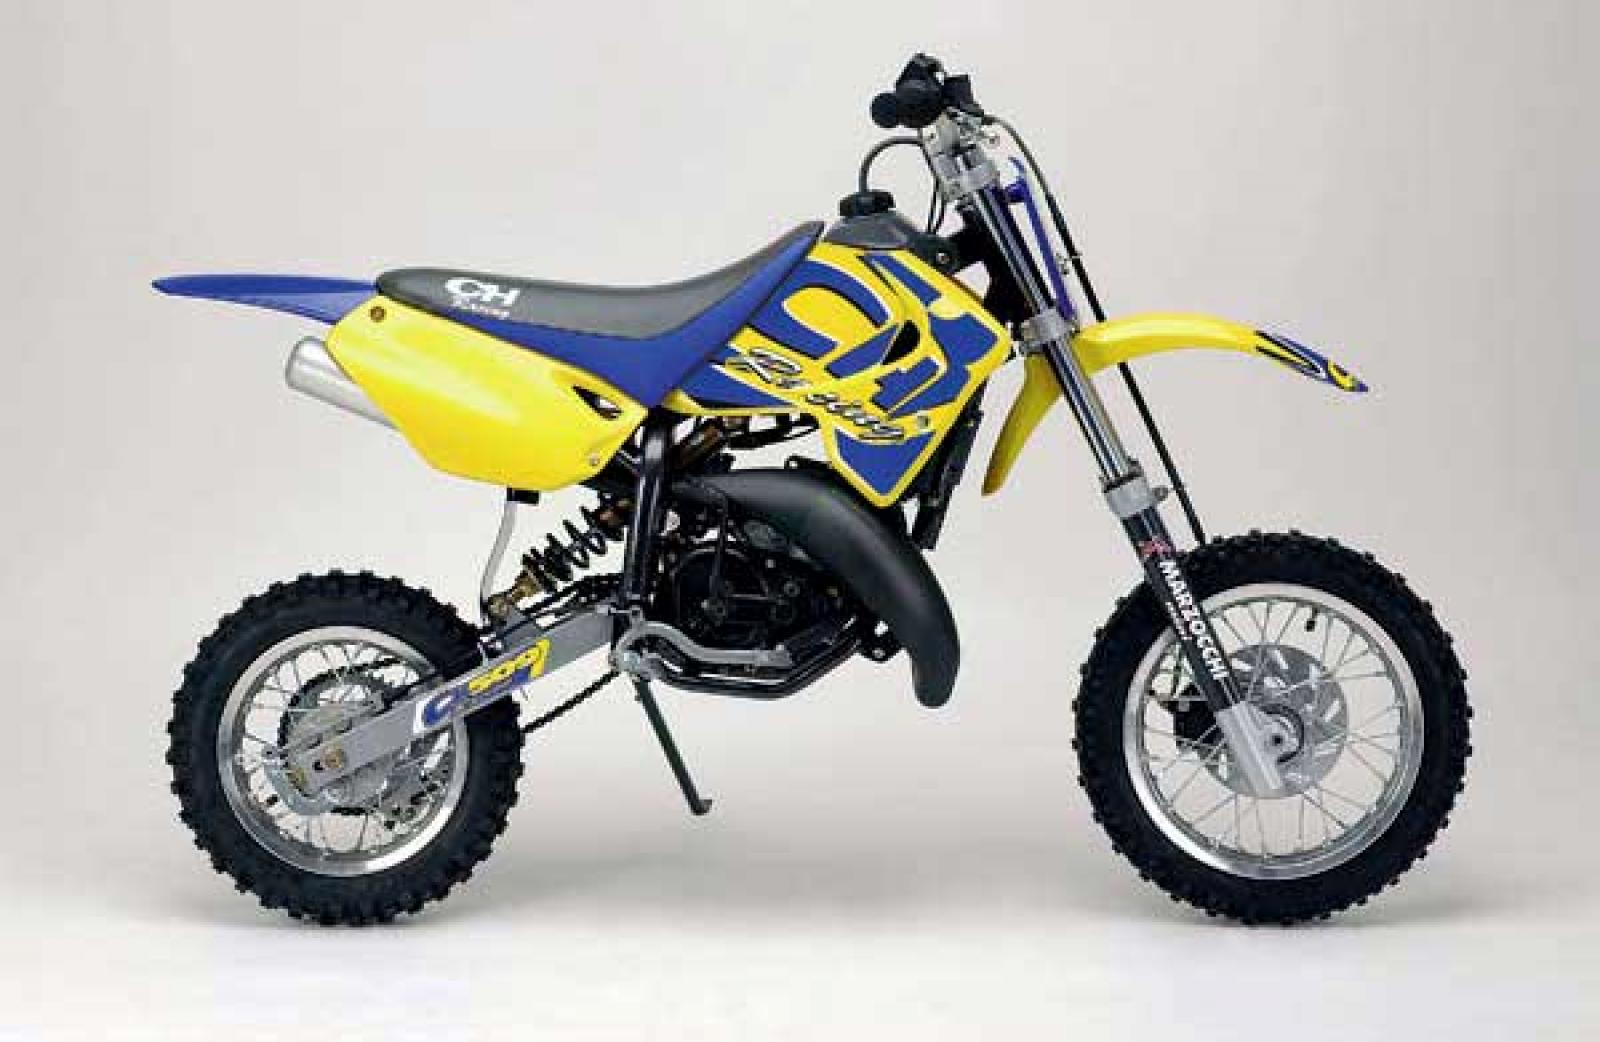 Ch racing 125 photo - 5